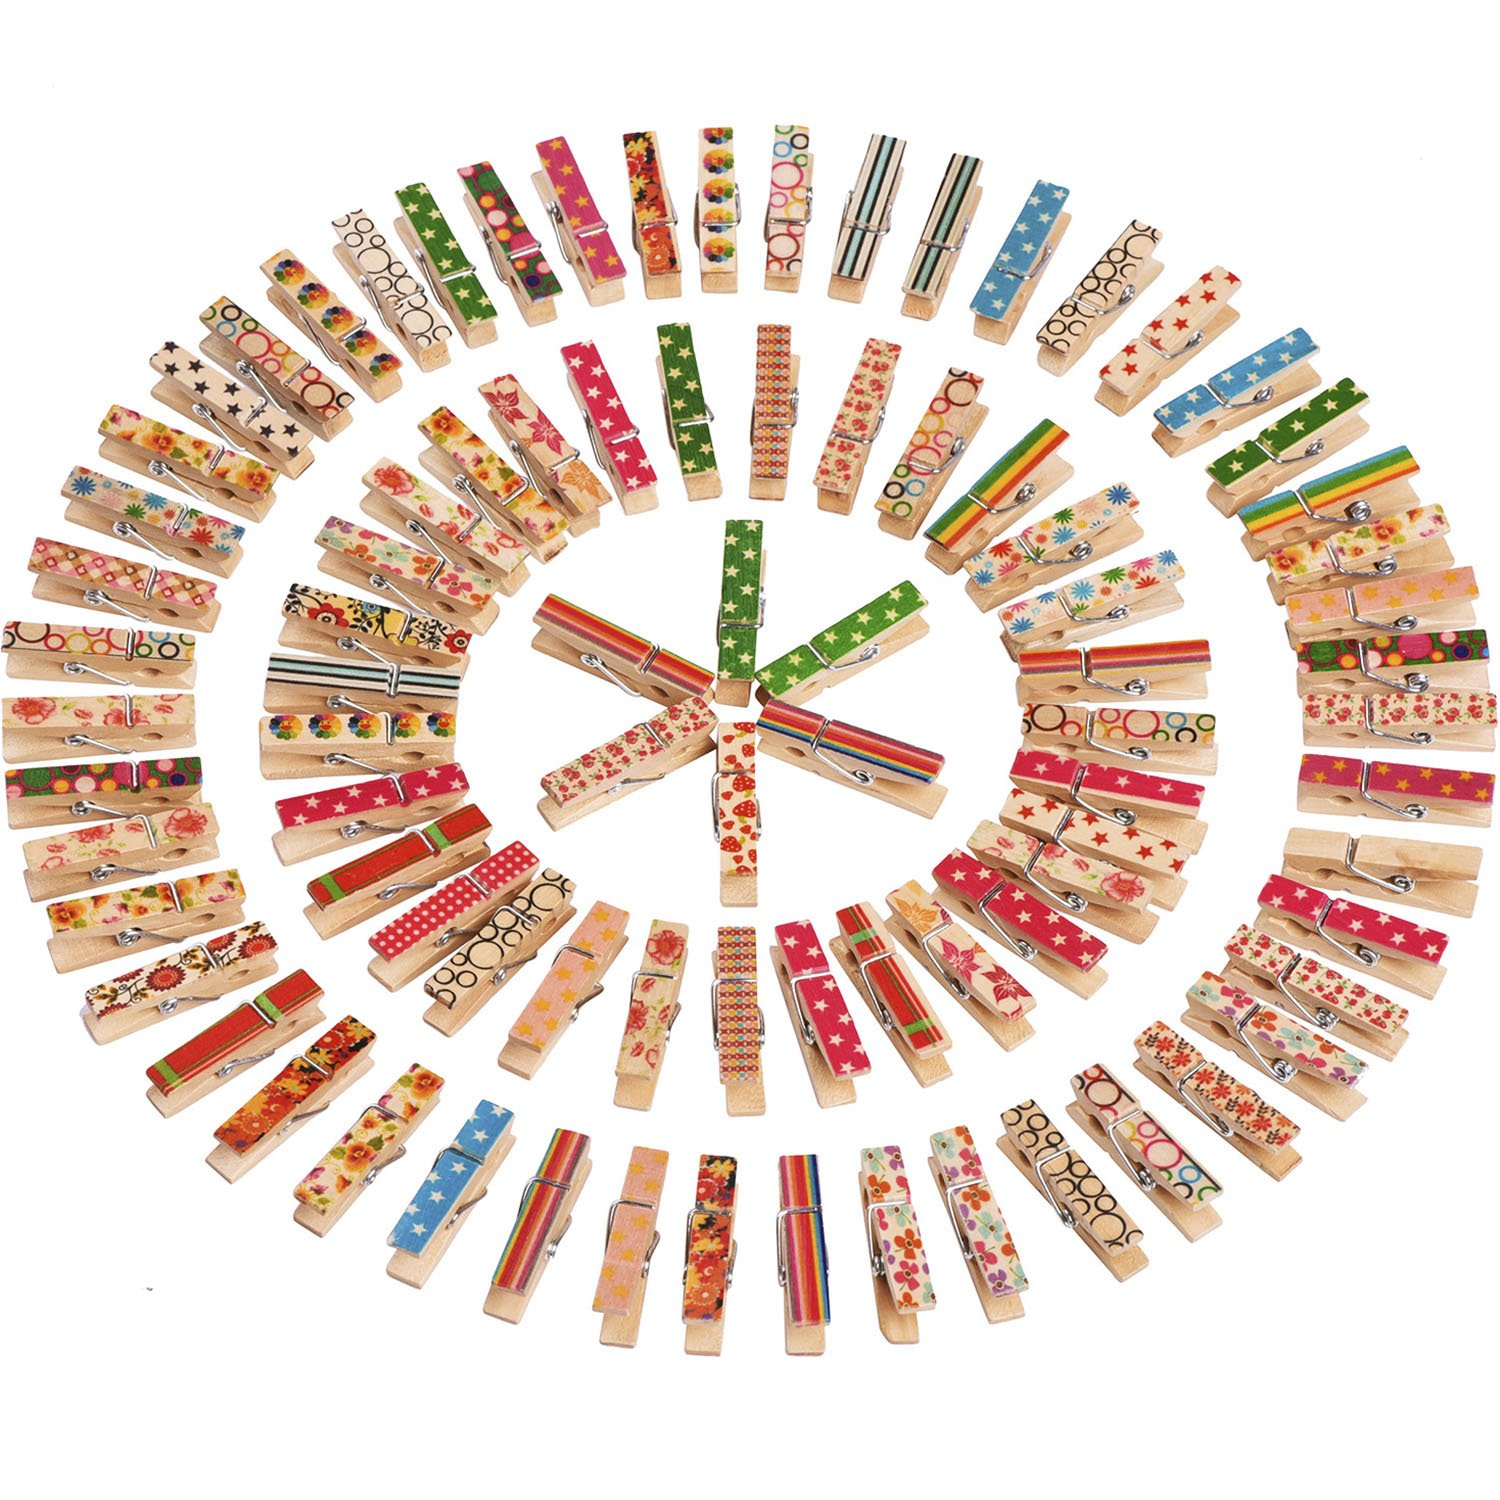 Mini Craft Pegs Wooden Clothespins, Assorted Colors, 100 Pieces Outus